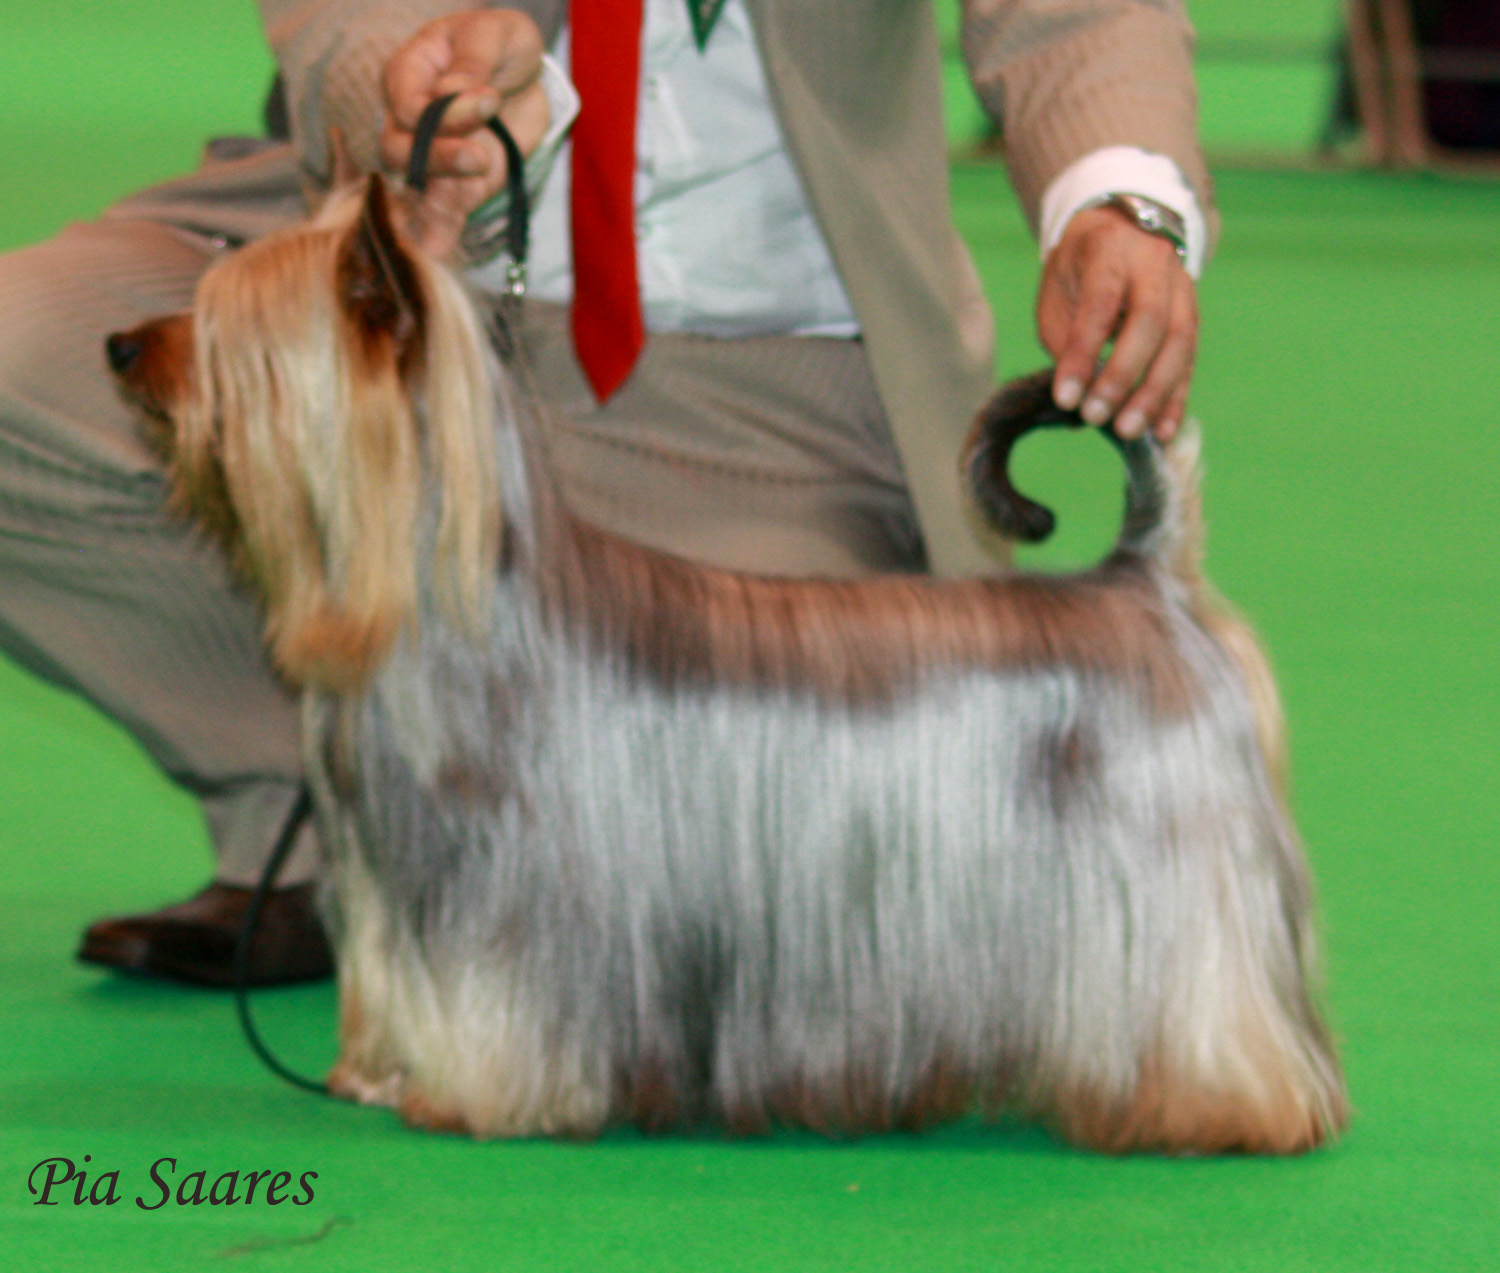 http://www.md10.eu/Blogs/Best%20Dog%20Shampoo%20for%20Australian%20Silky%20Blue_crufts.jpg